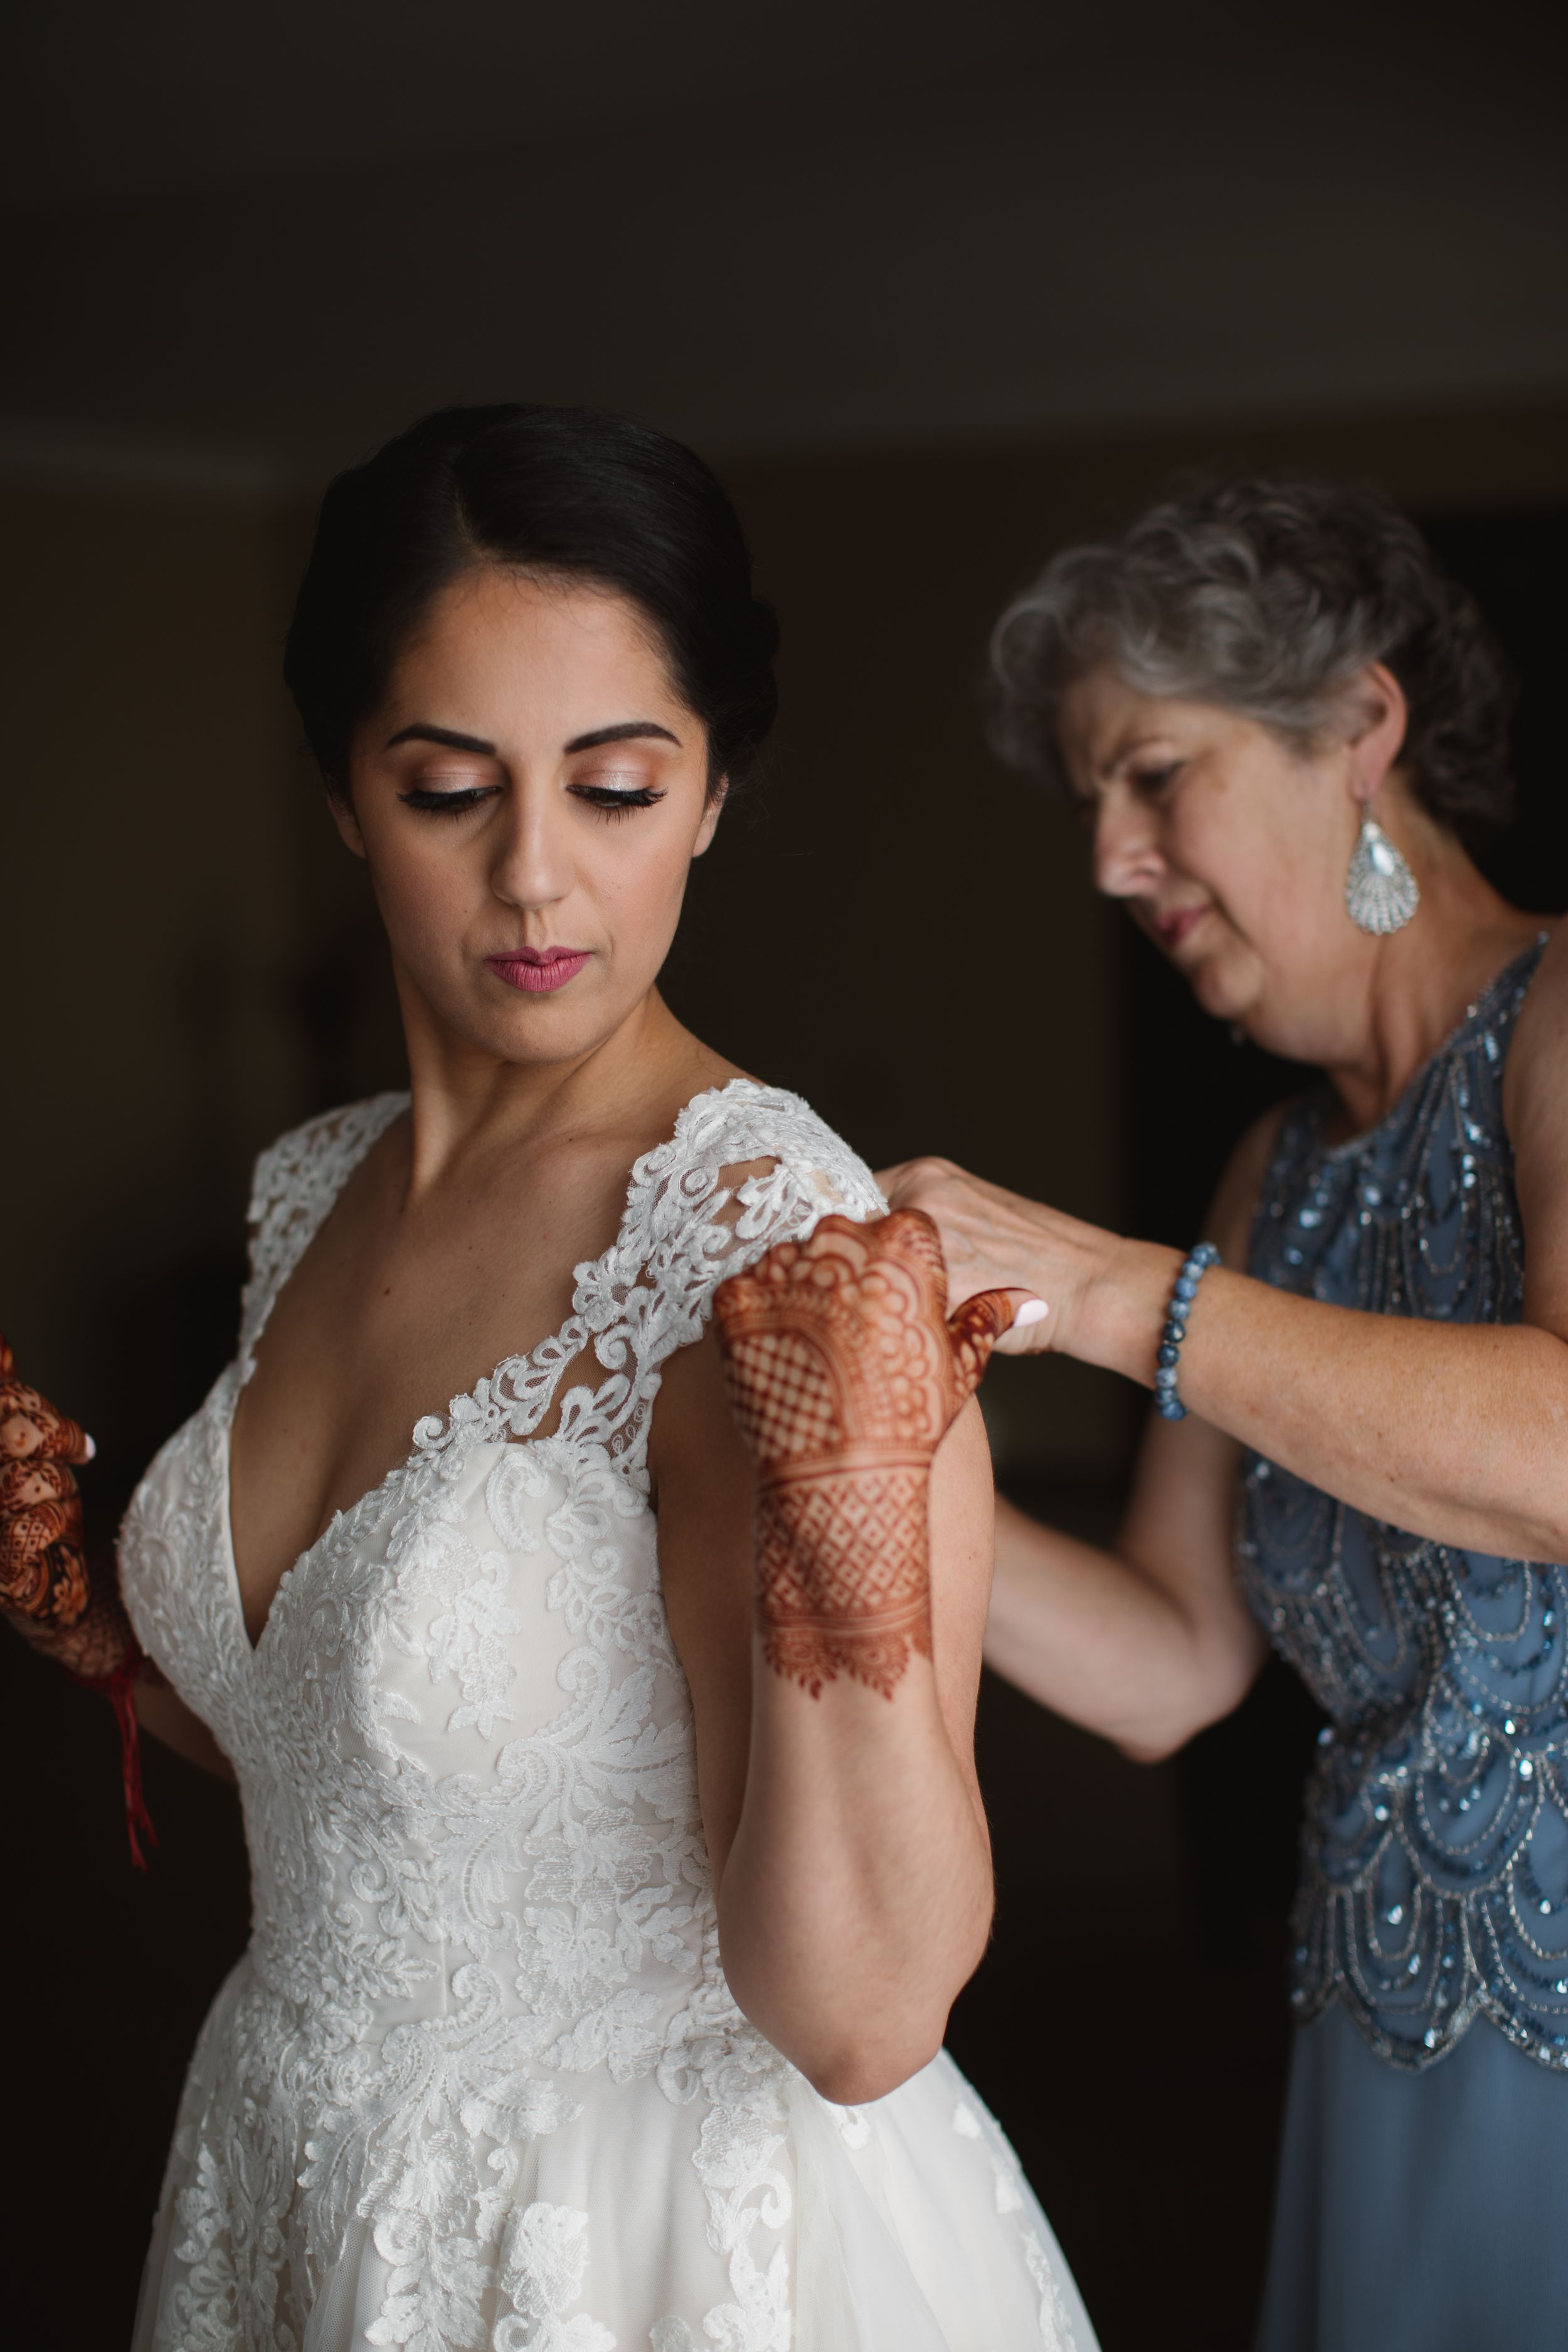 bride getting into her wedding dress and mom helping